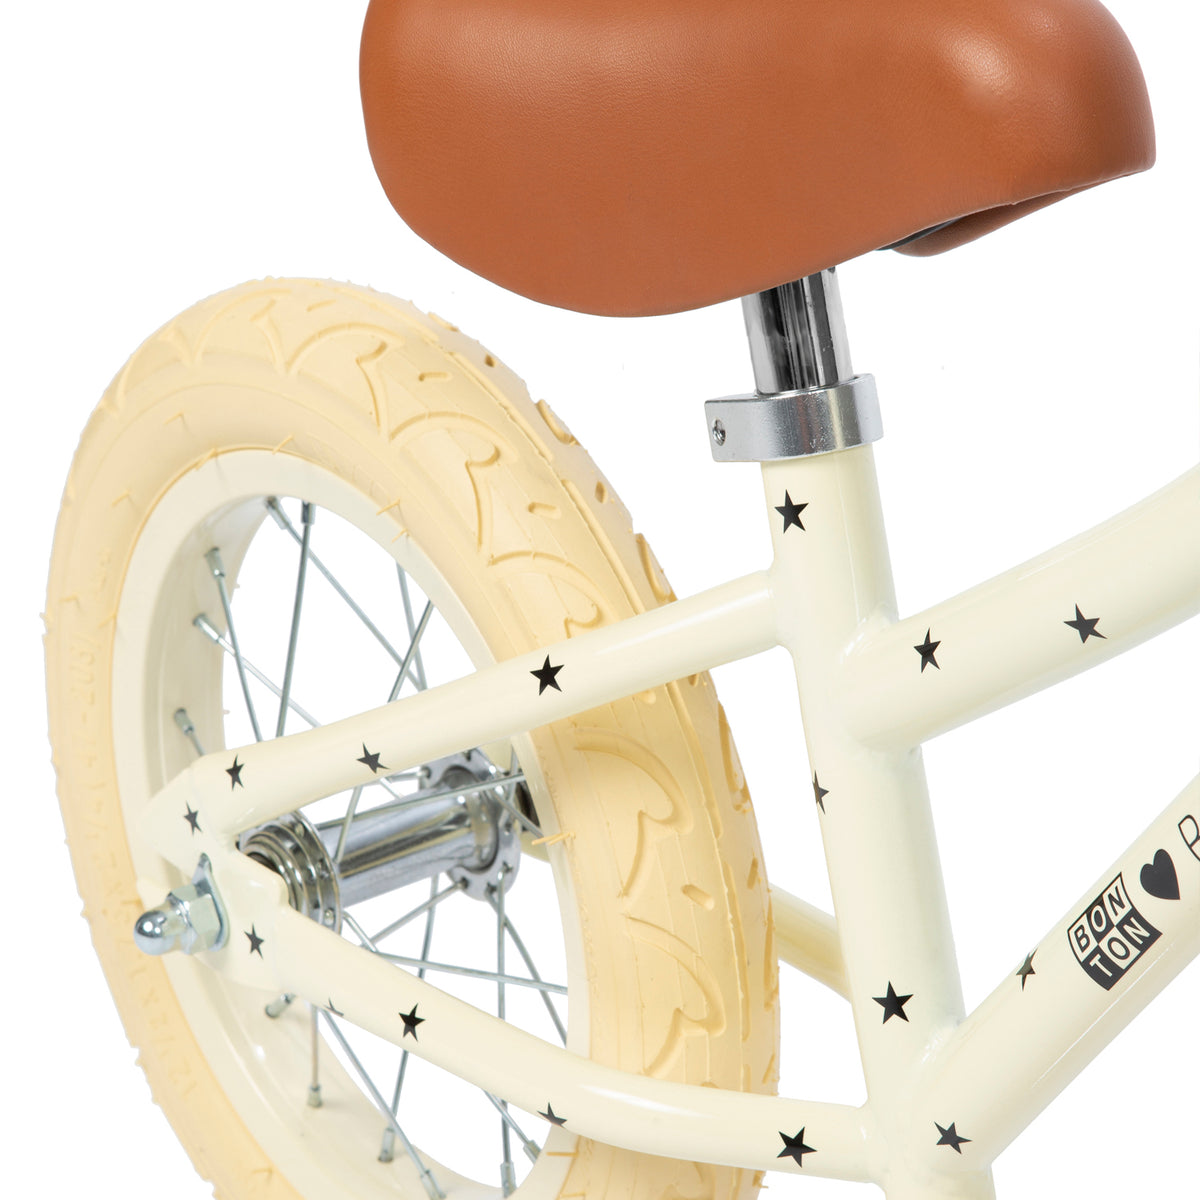 Banwood Bonton Cream balance bike